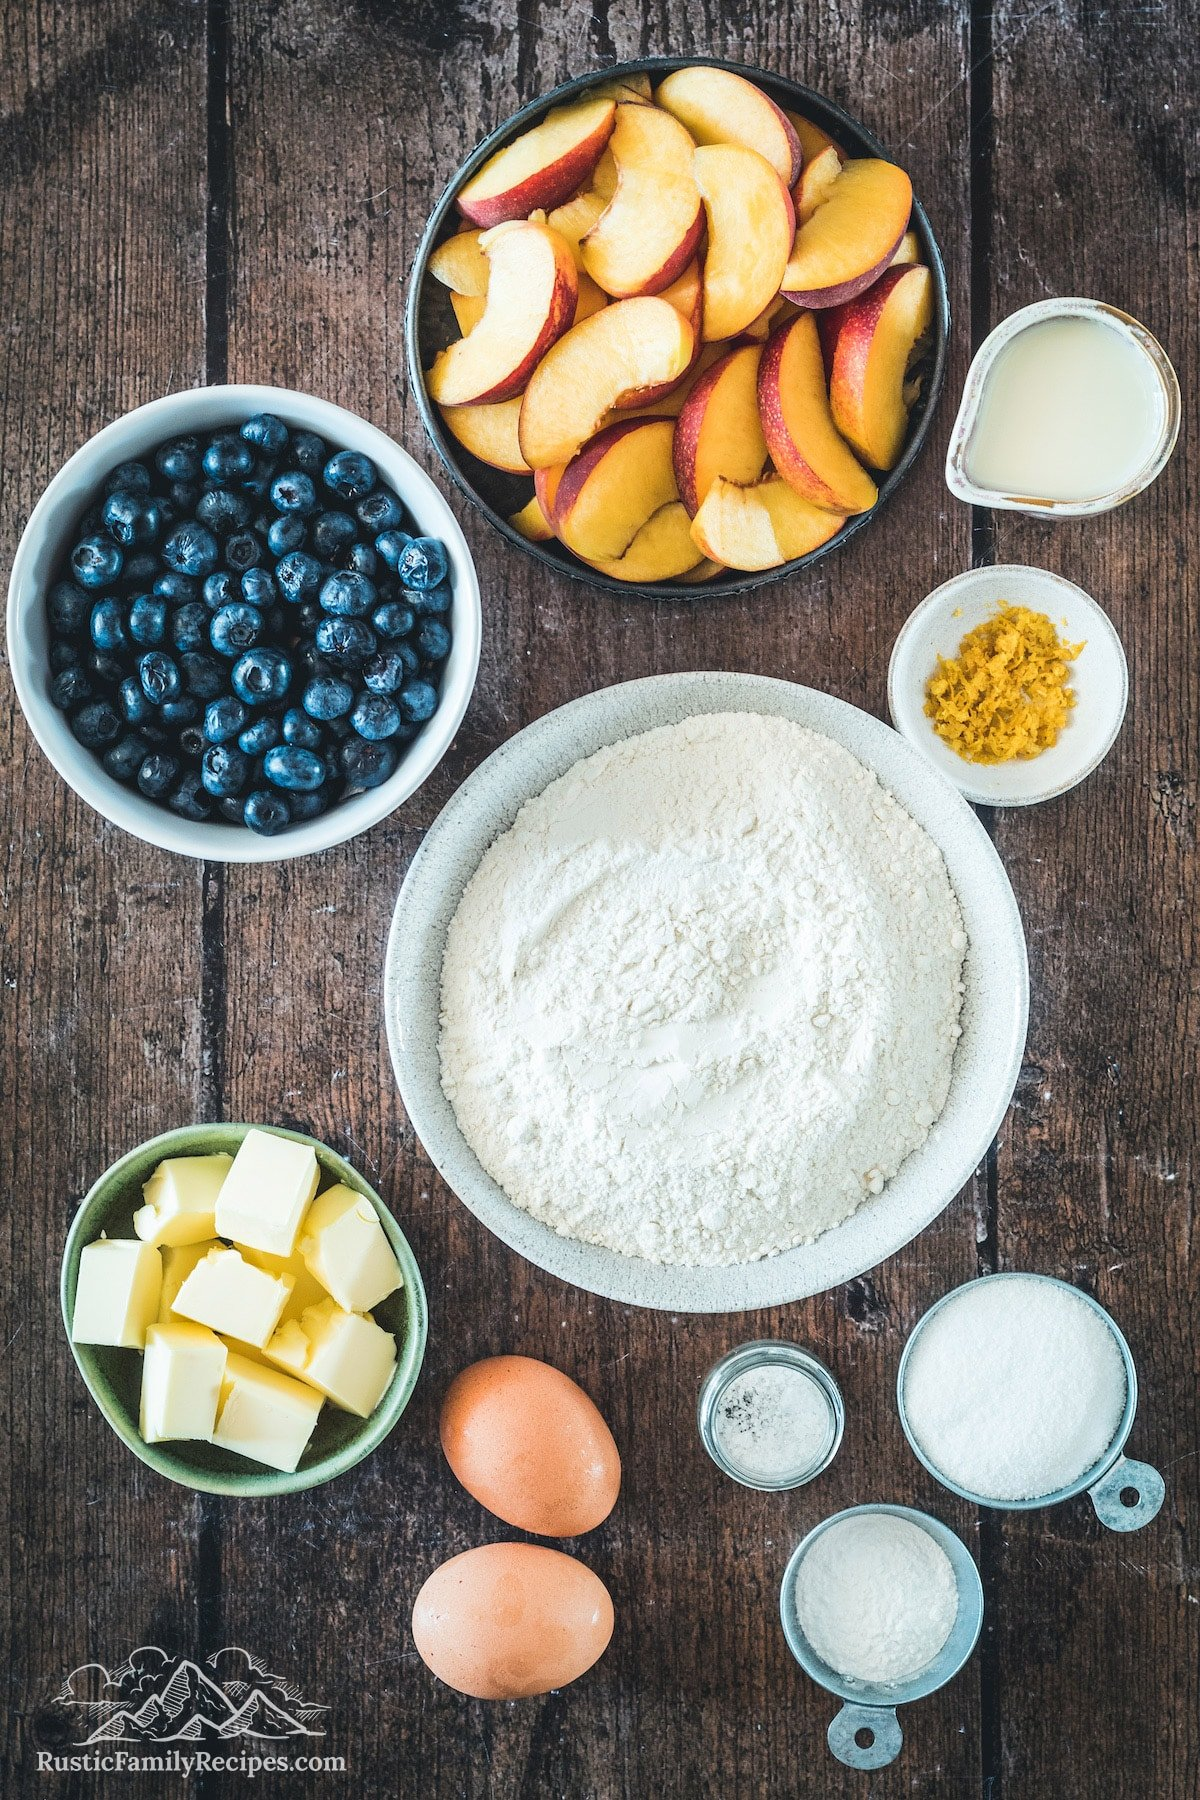 Ingredients for blueberry peach cobbler in bowls